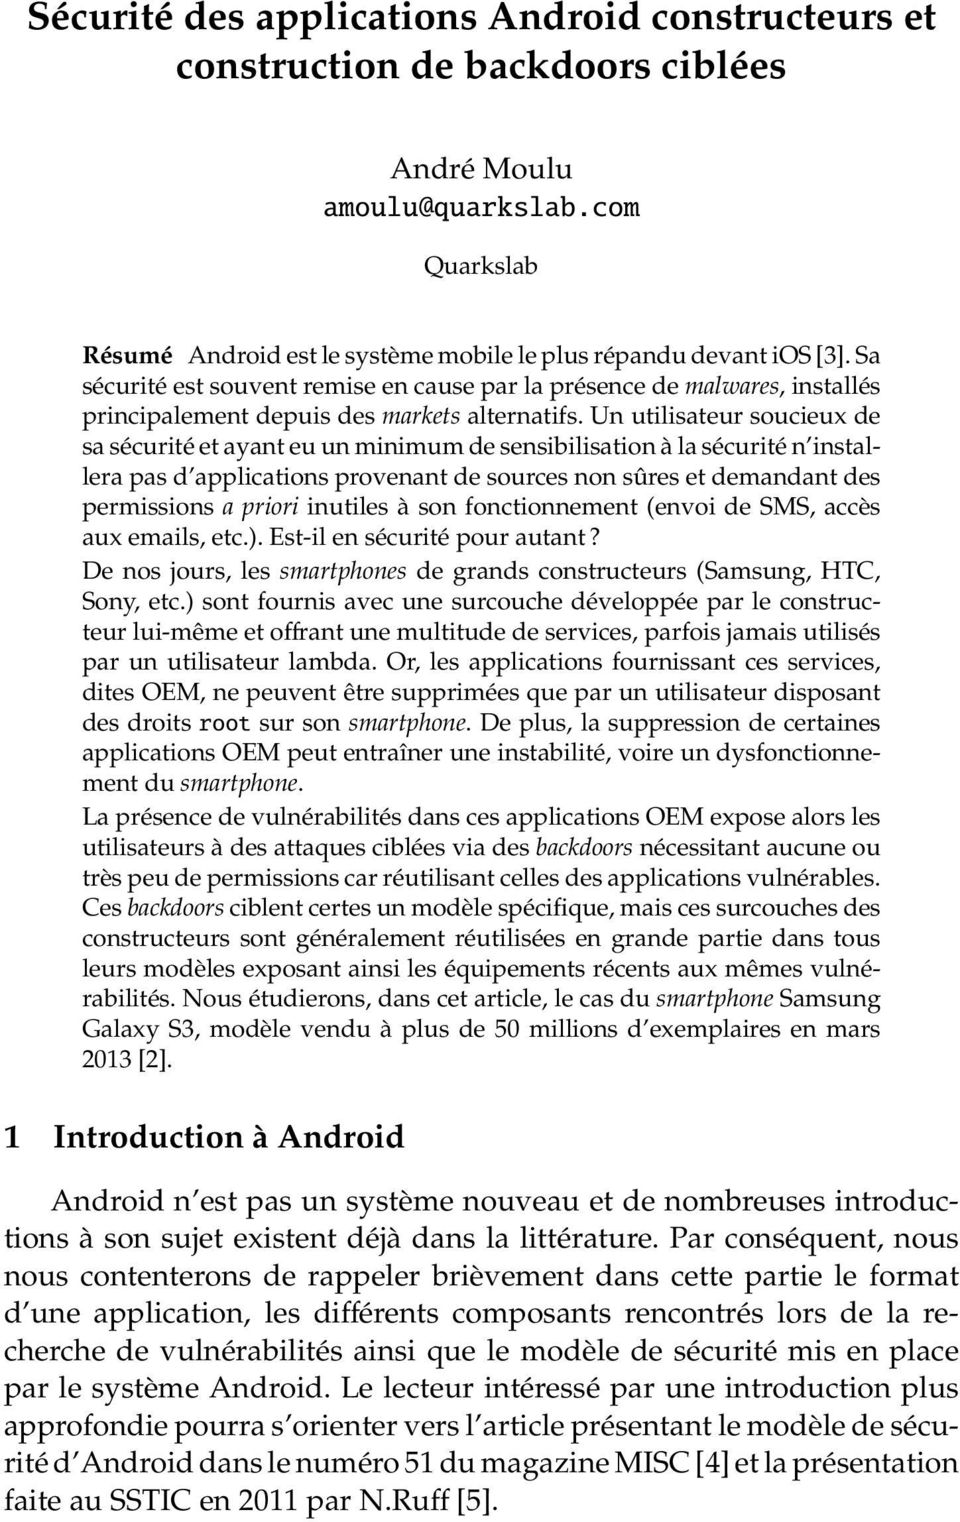 Un utilisateur soucieux de sa sécurité et ayant eu un minimum de sensibilisation à la sécurité n installera pas d applications provenant de sources non sûres et demandant des permissions a priori